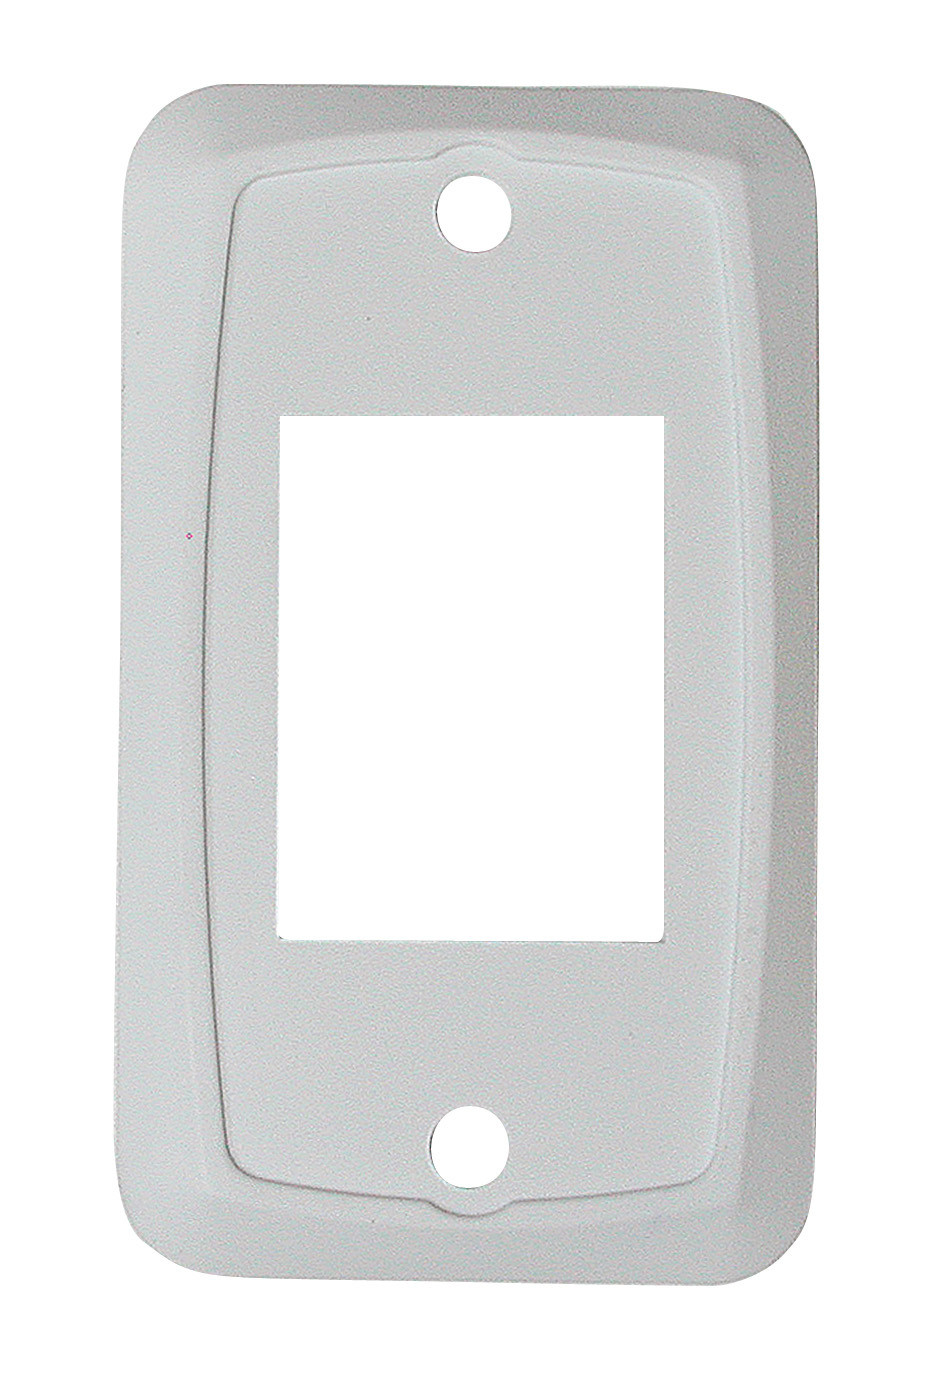 Switch Plate - White 3/Bag